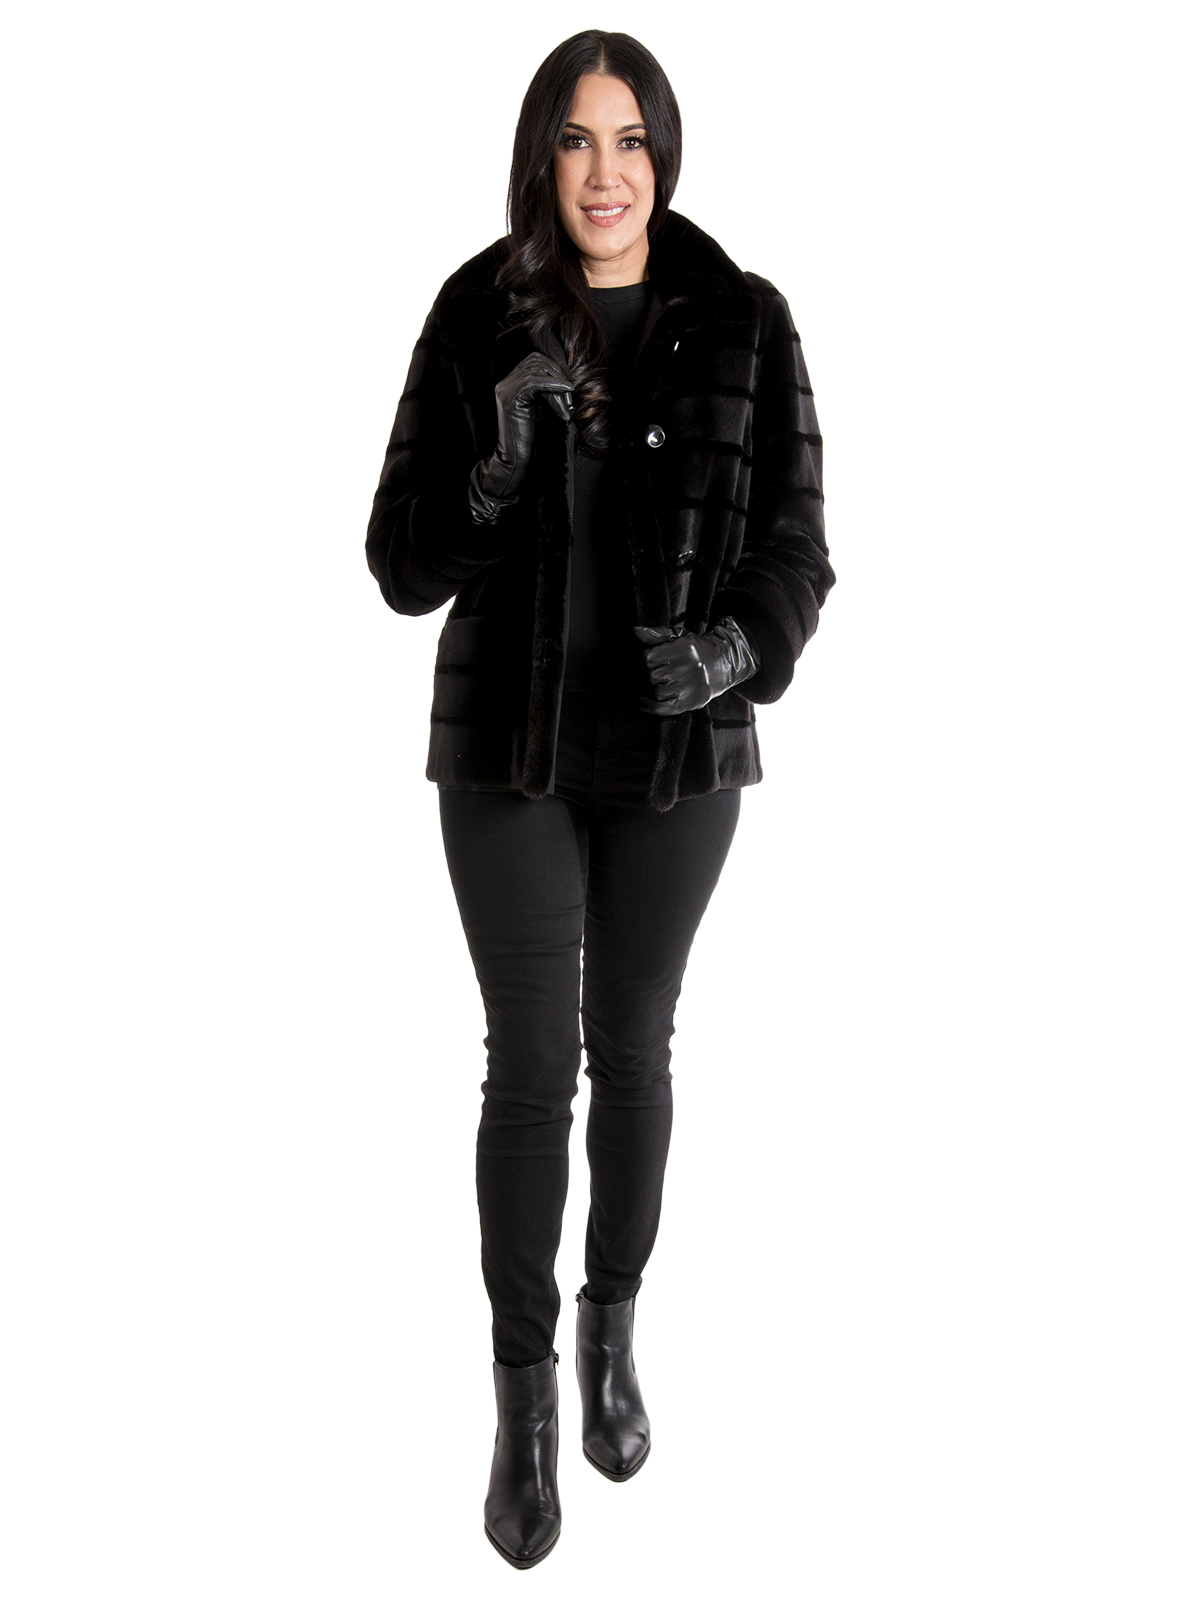 Women's Black Sheared Mink Fur Jacket